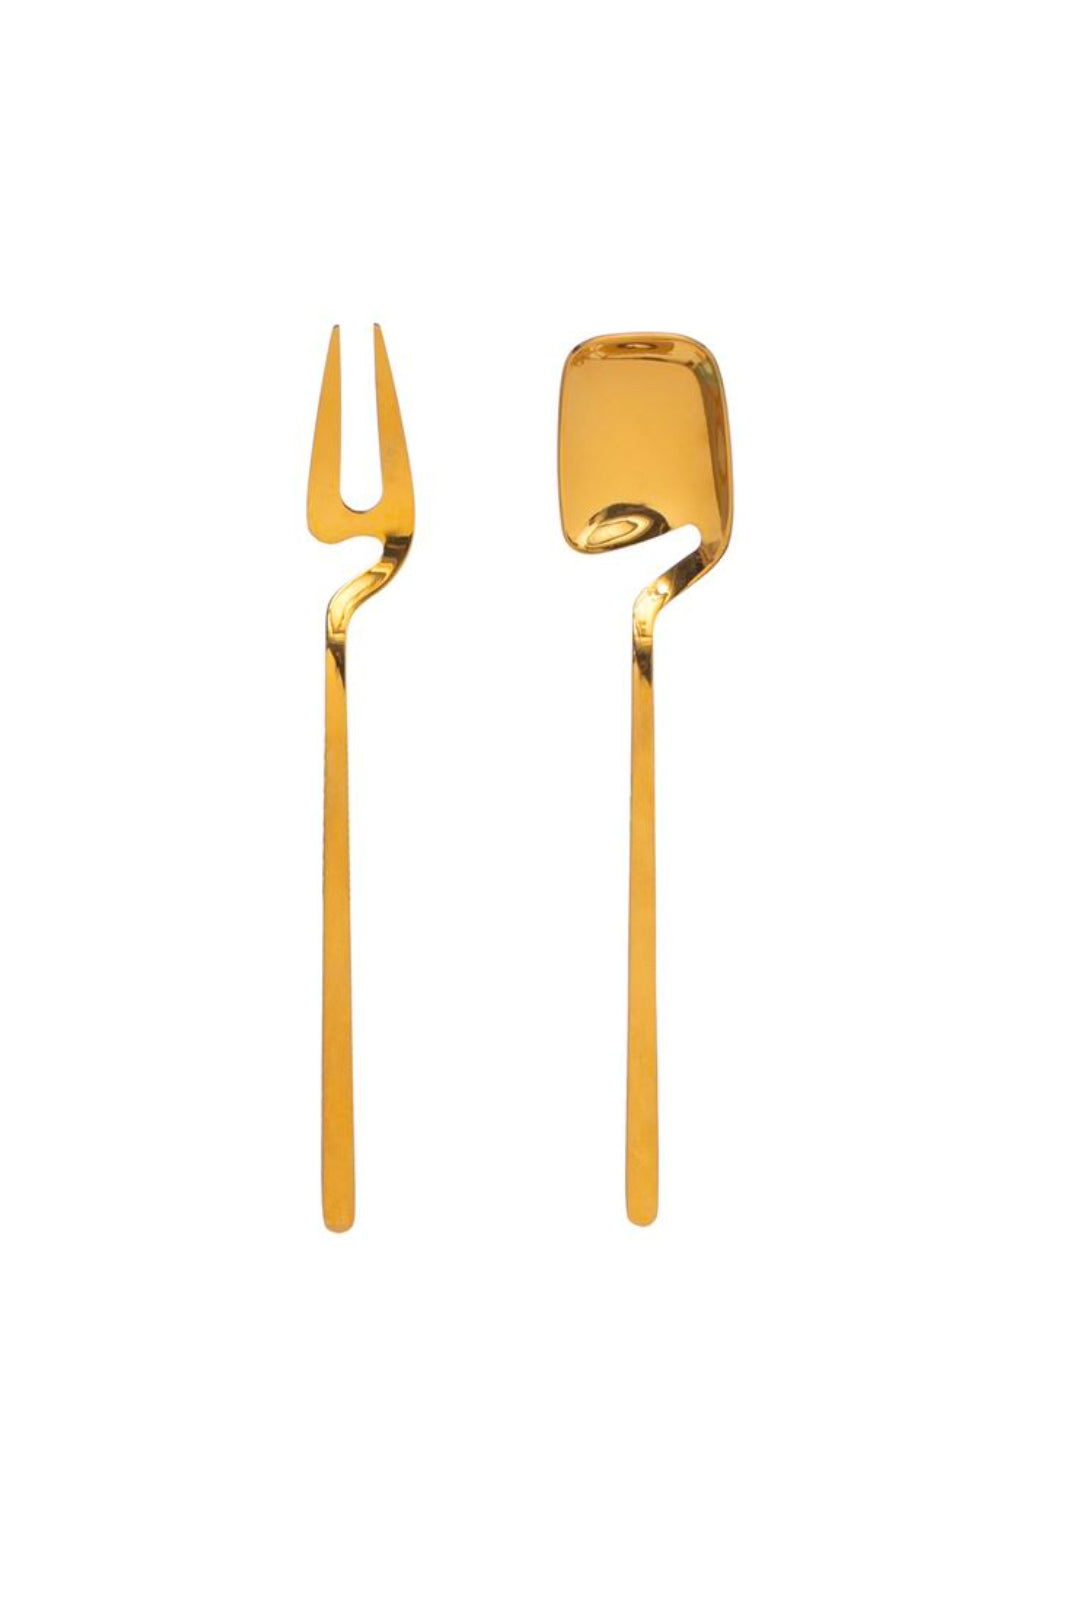 Jam Spoon & Pickle Fork, Gold Finish